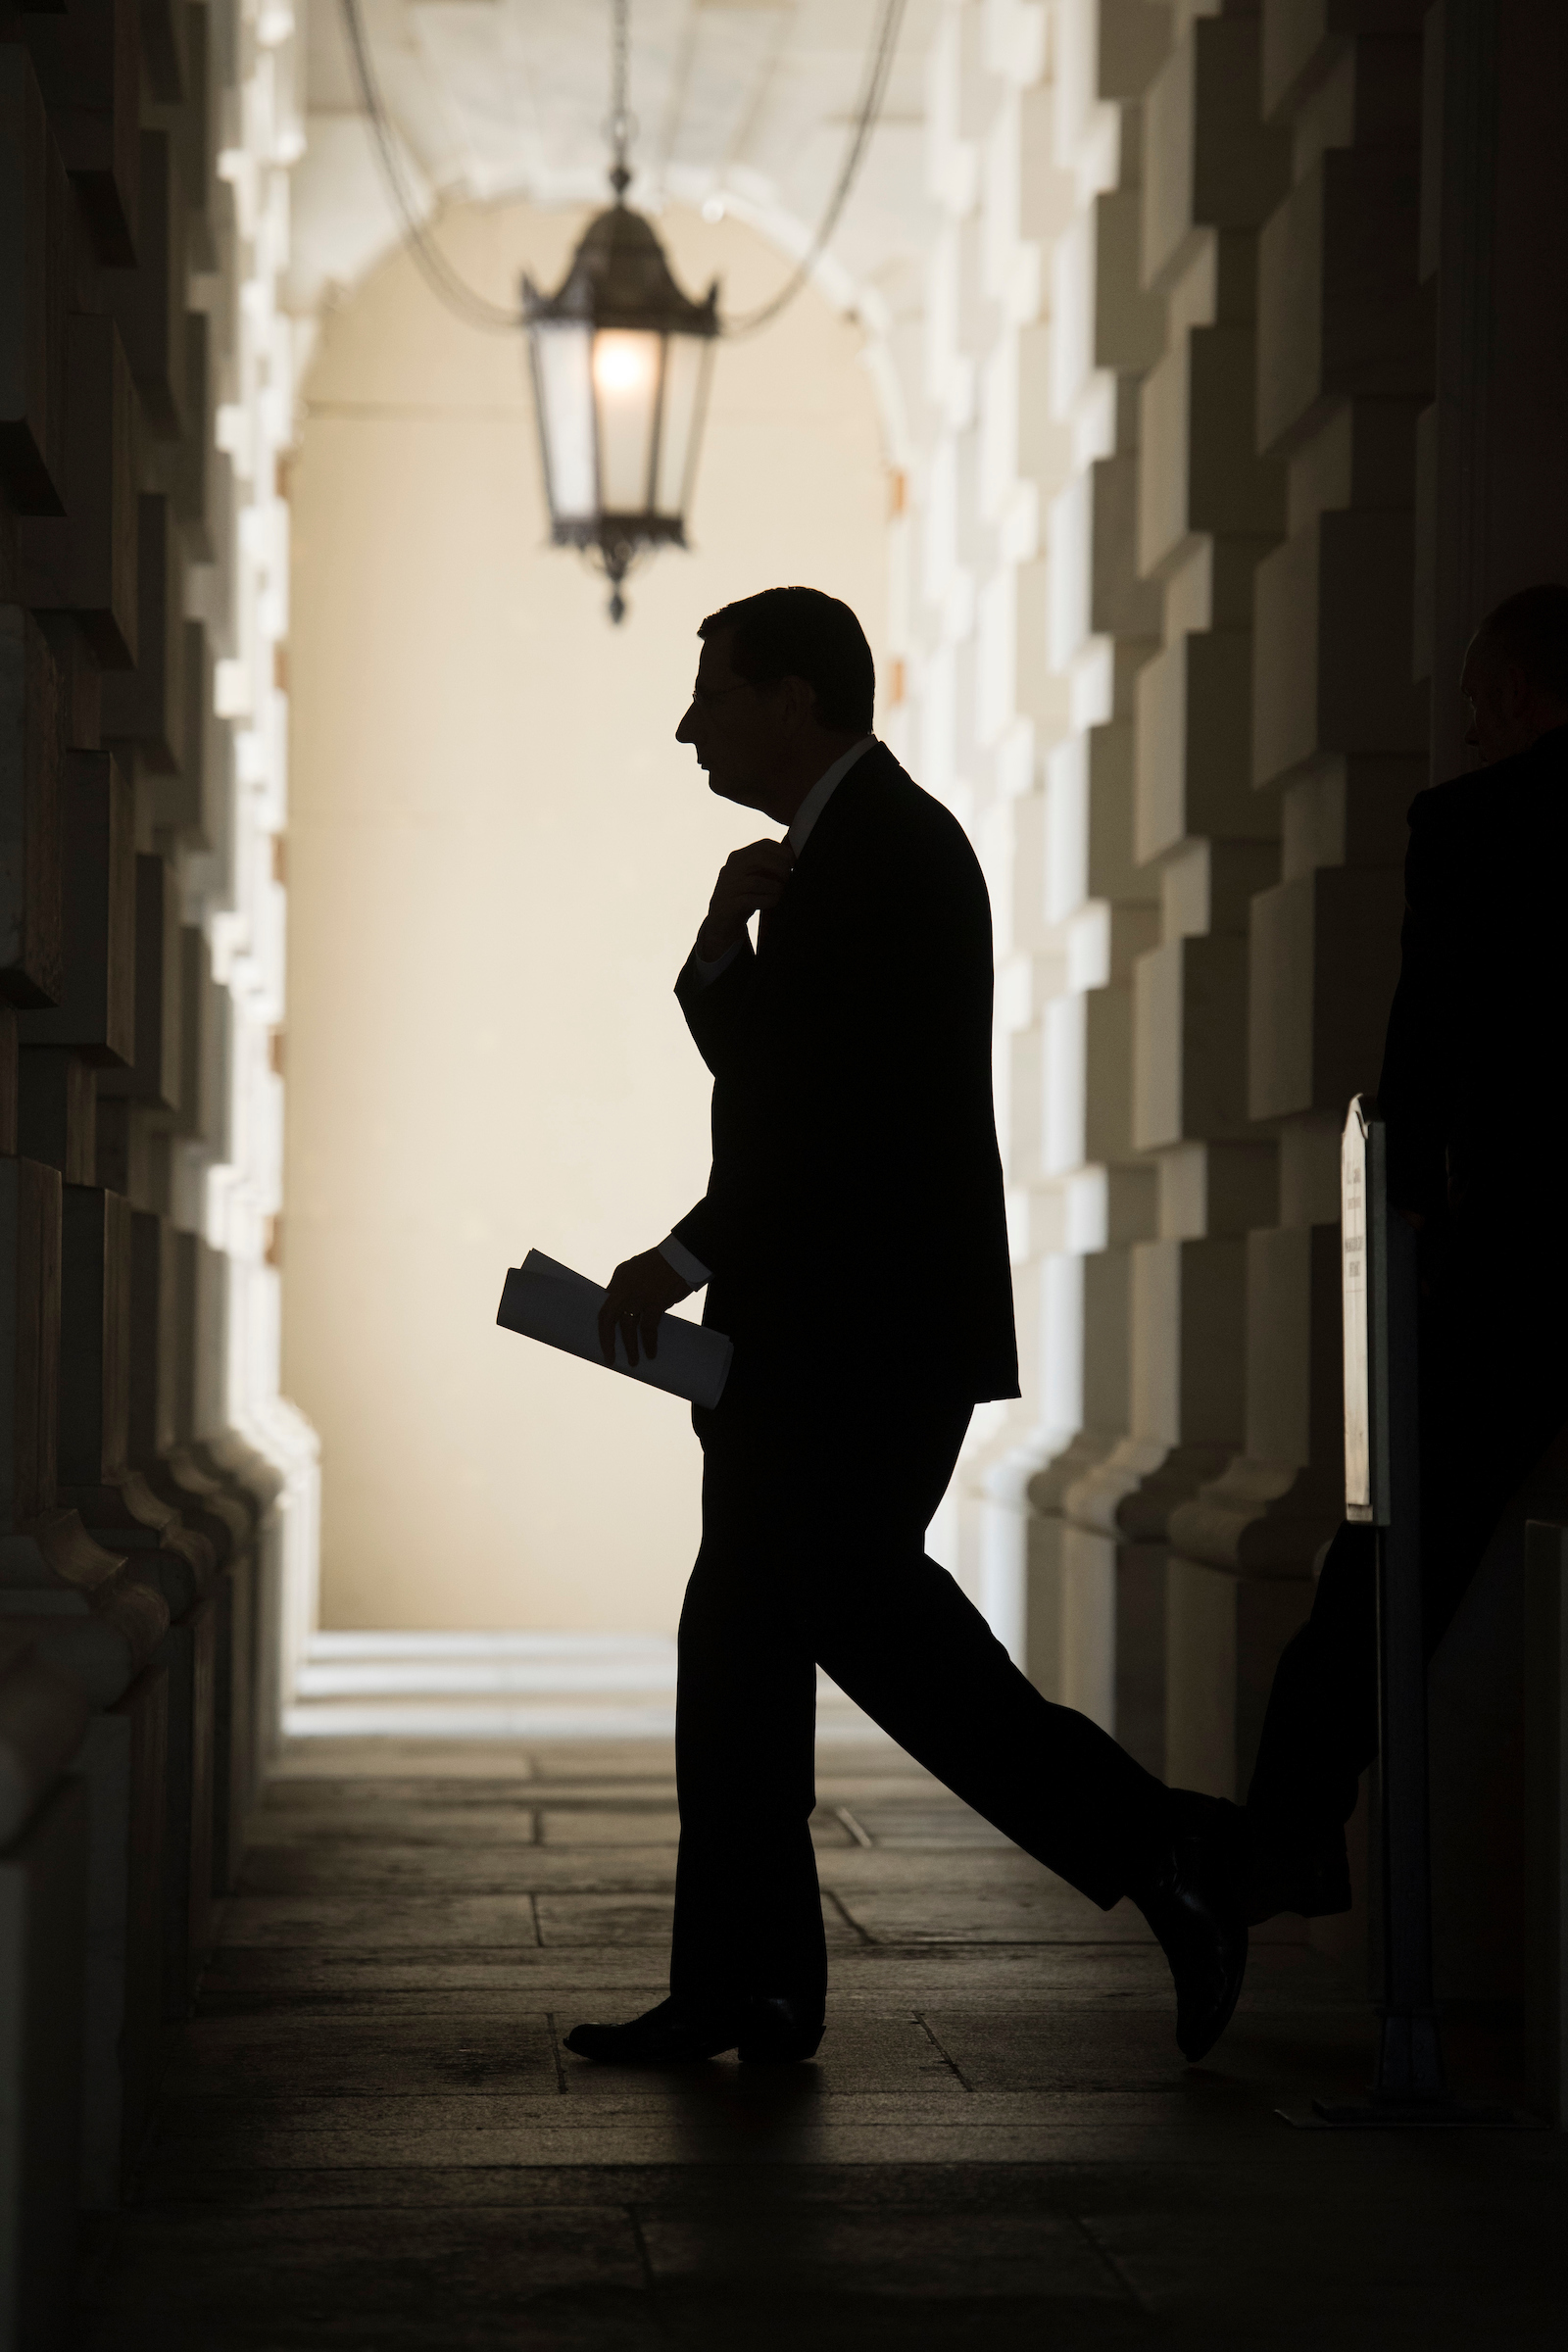 Sen. John Barrasso, R-Wyo., leaves the Capitol before boarding a bus to bring Republican senators to lunch at the White House with President Trump to discuss the health care plan on July 19, 2017. (Photo By Tom Williams/CQ Roll Call)